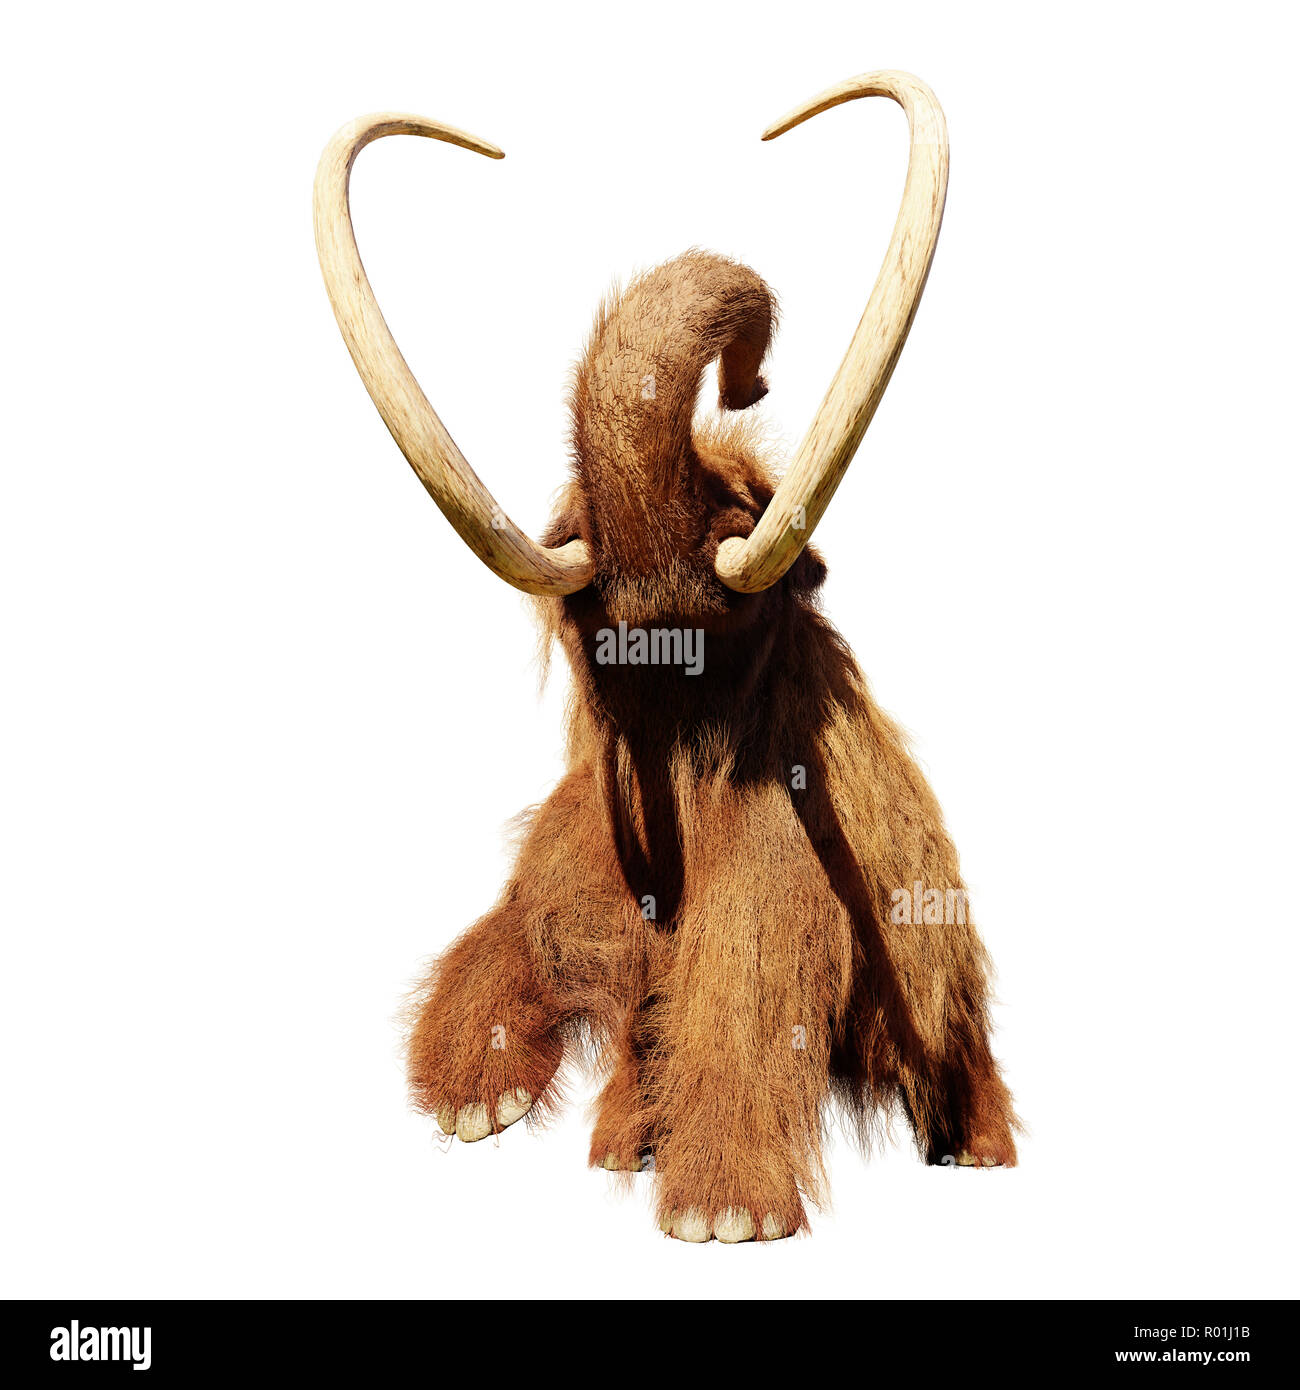 woolly mammoth, running prehistoric mammal isolated on white background - Stock Image